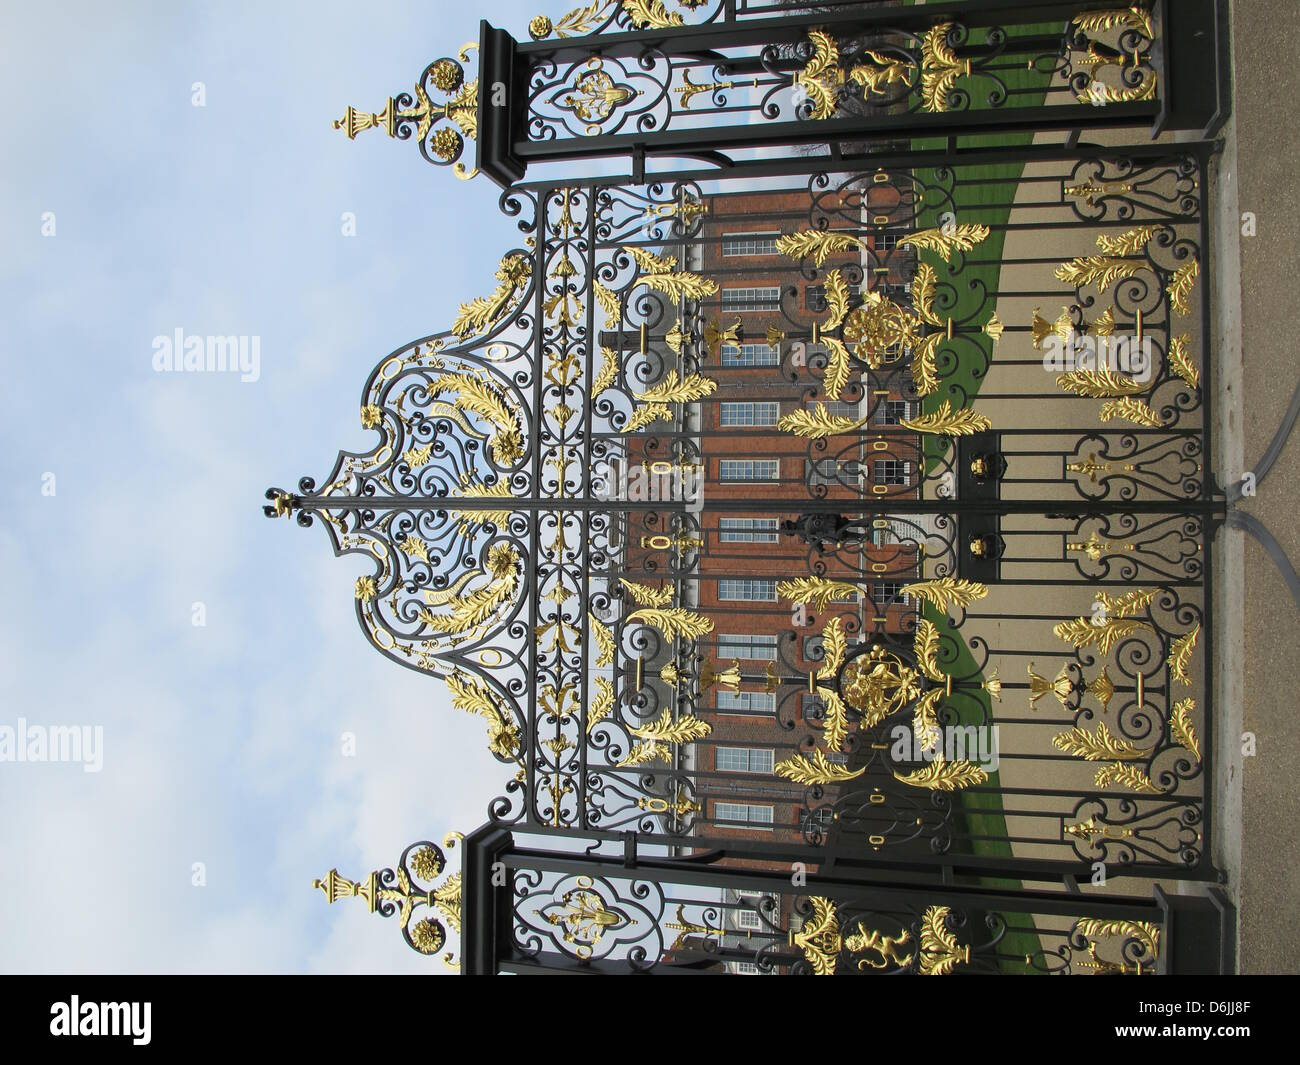 The gates of Kensington Palace is pictured in London, GreatBritain, 20 March 2012. Kensington Palace was the - Stock Image